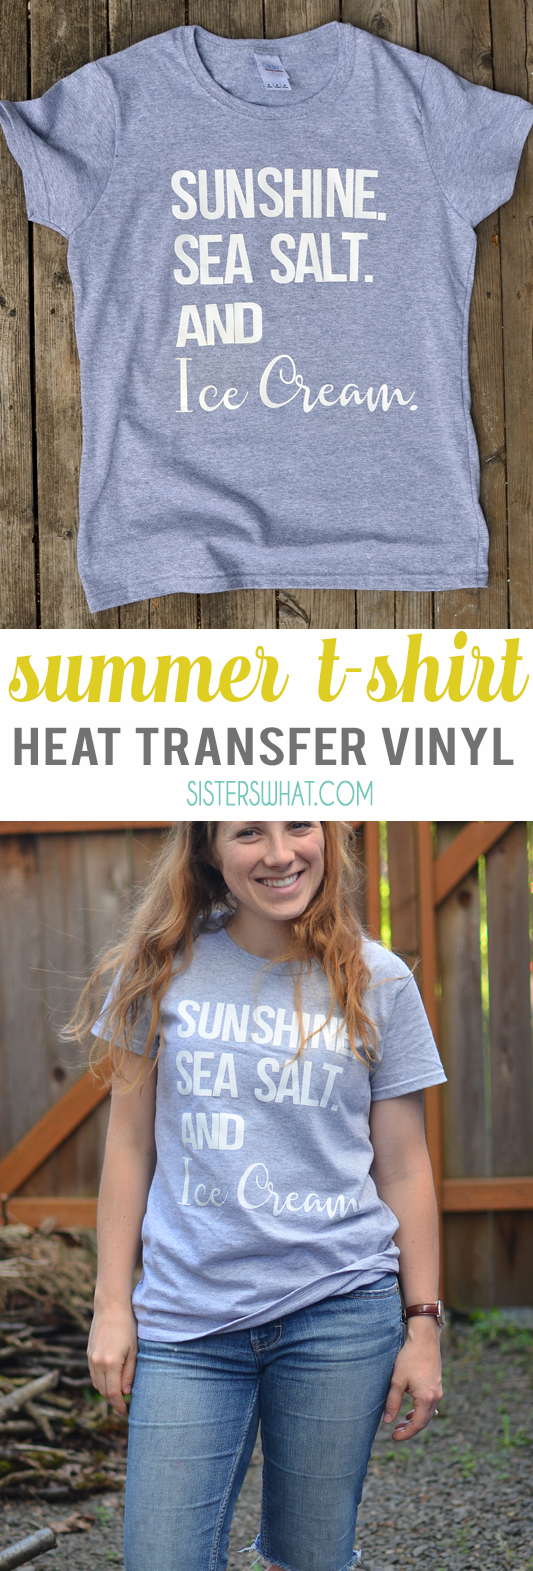 Sunshine sea salt and ice cream summer shirt using heat transfer vinyl